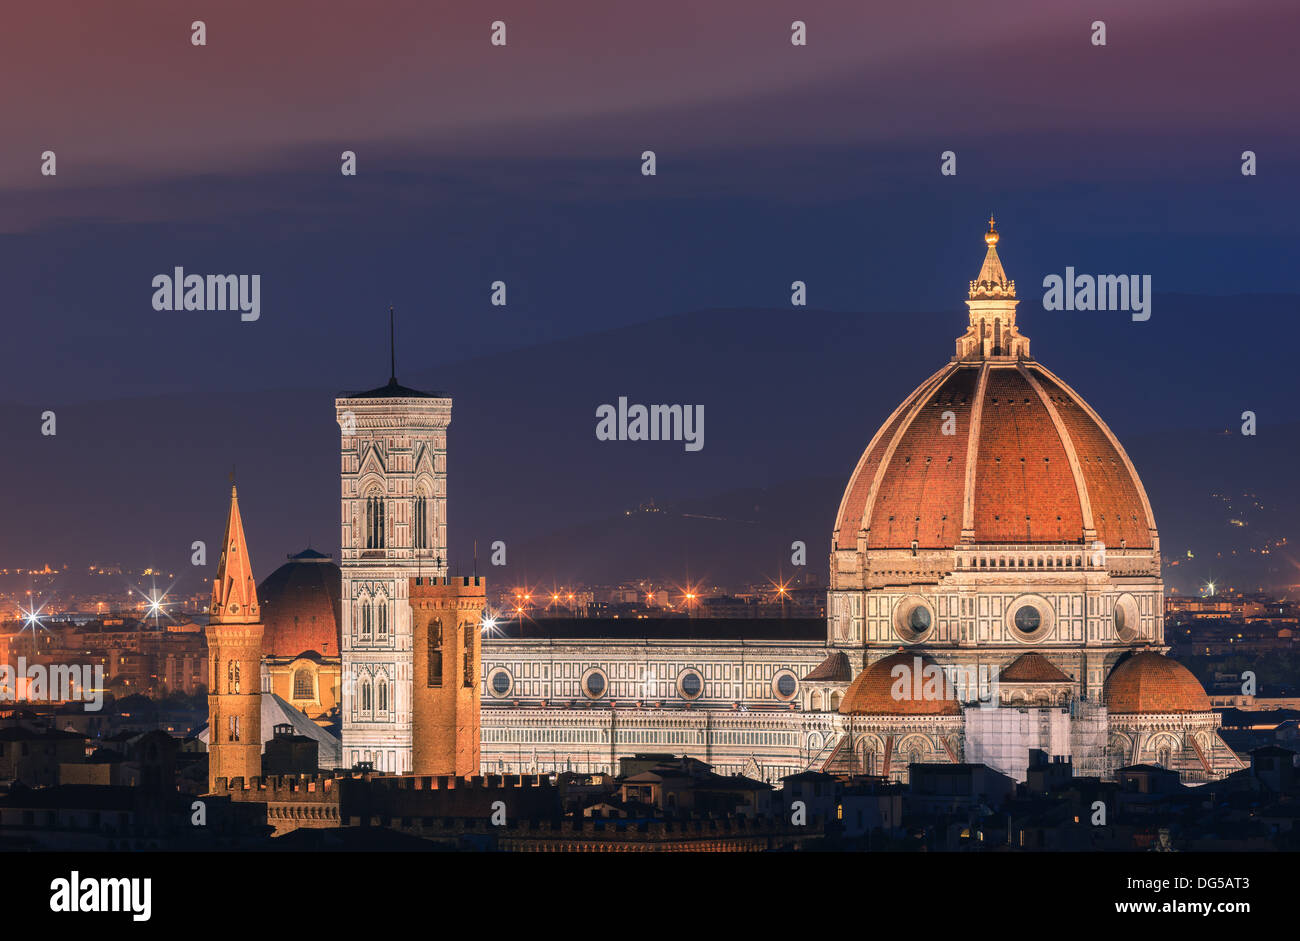 The Basilica di Santa Maria del Fiore (Basilica of Saint Mary of the Flower) is the main church of Florence - Stock Image